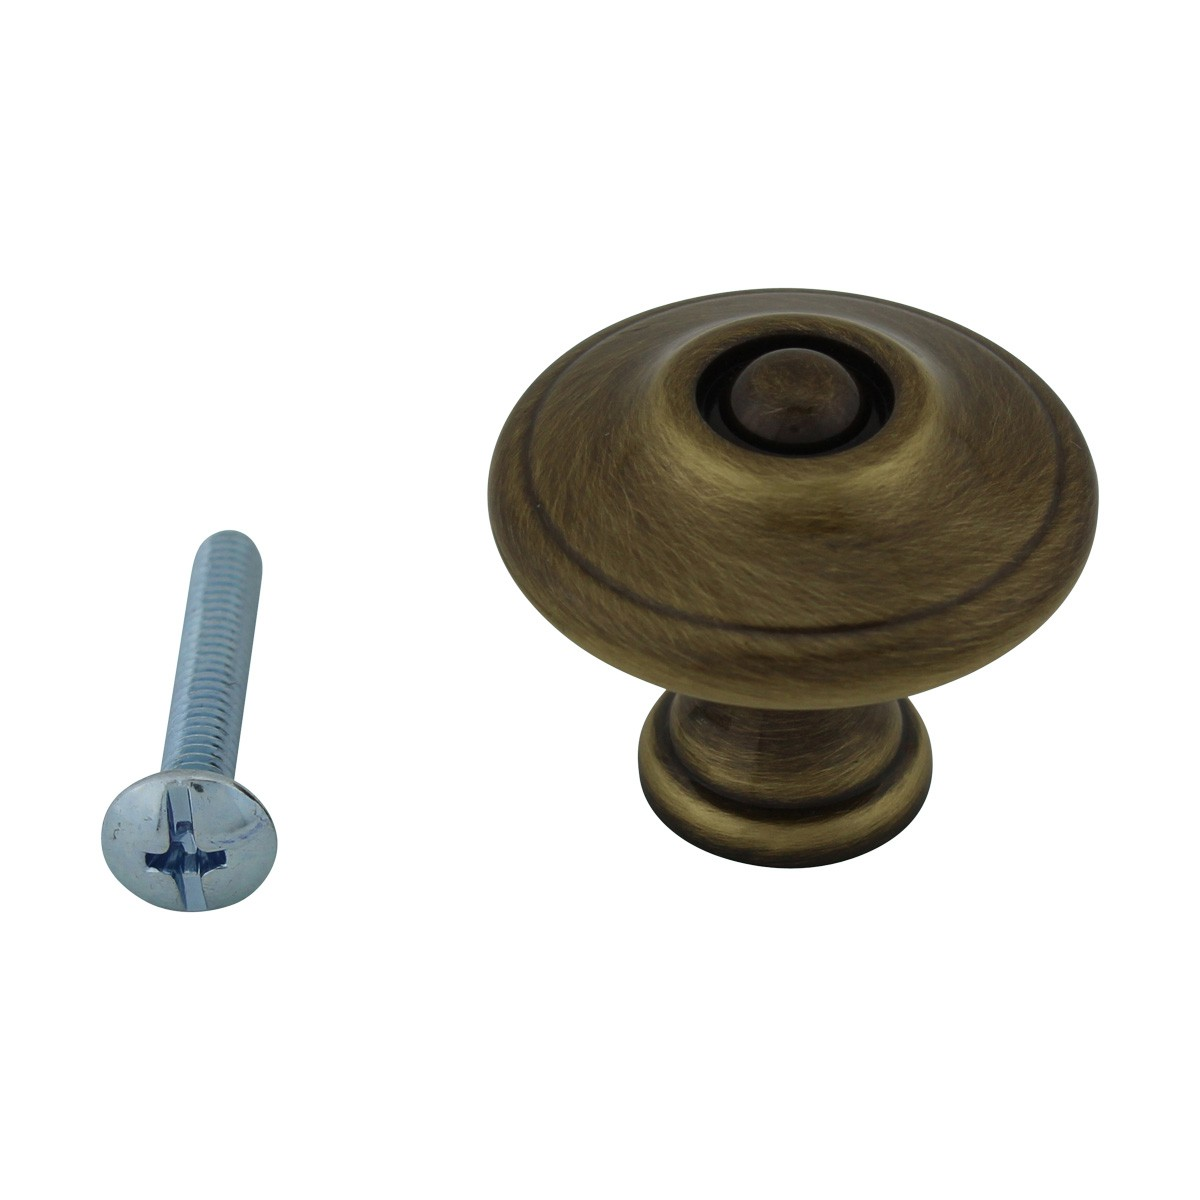 6 Cabinet Knob Antique Solid Brass 1 14 Dia Cabinet Hardware Cabinet Knobs Cabinet Knob